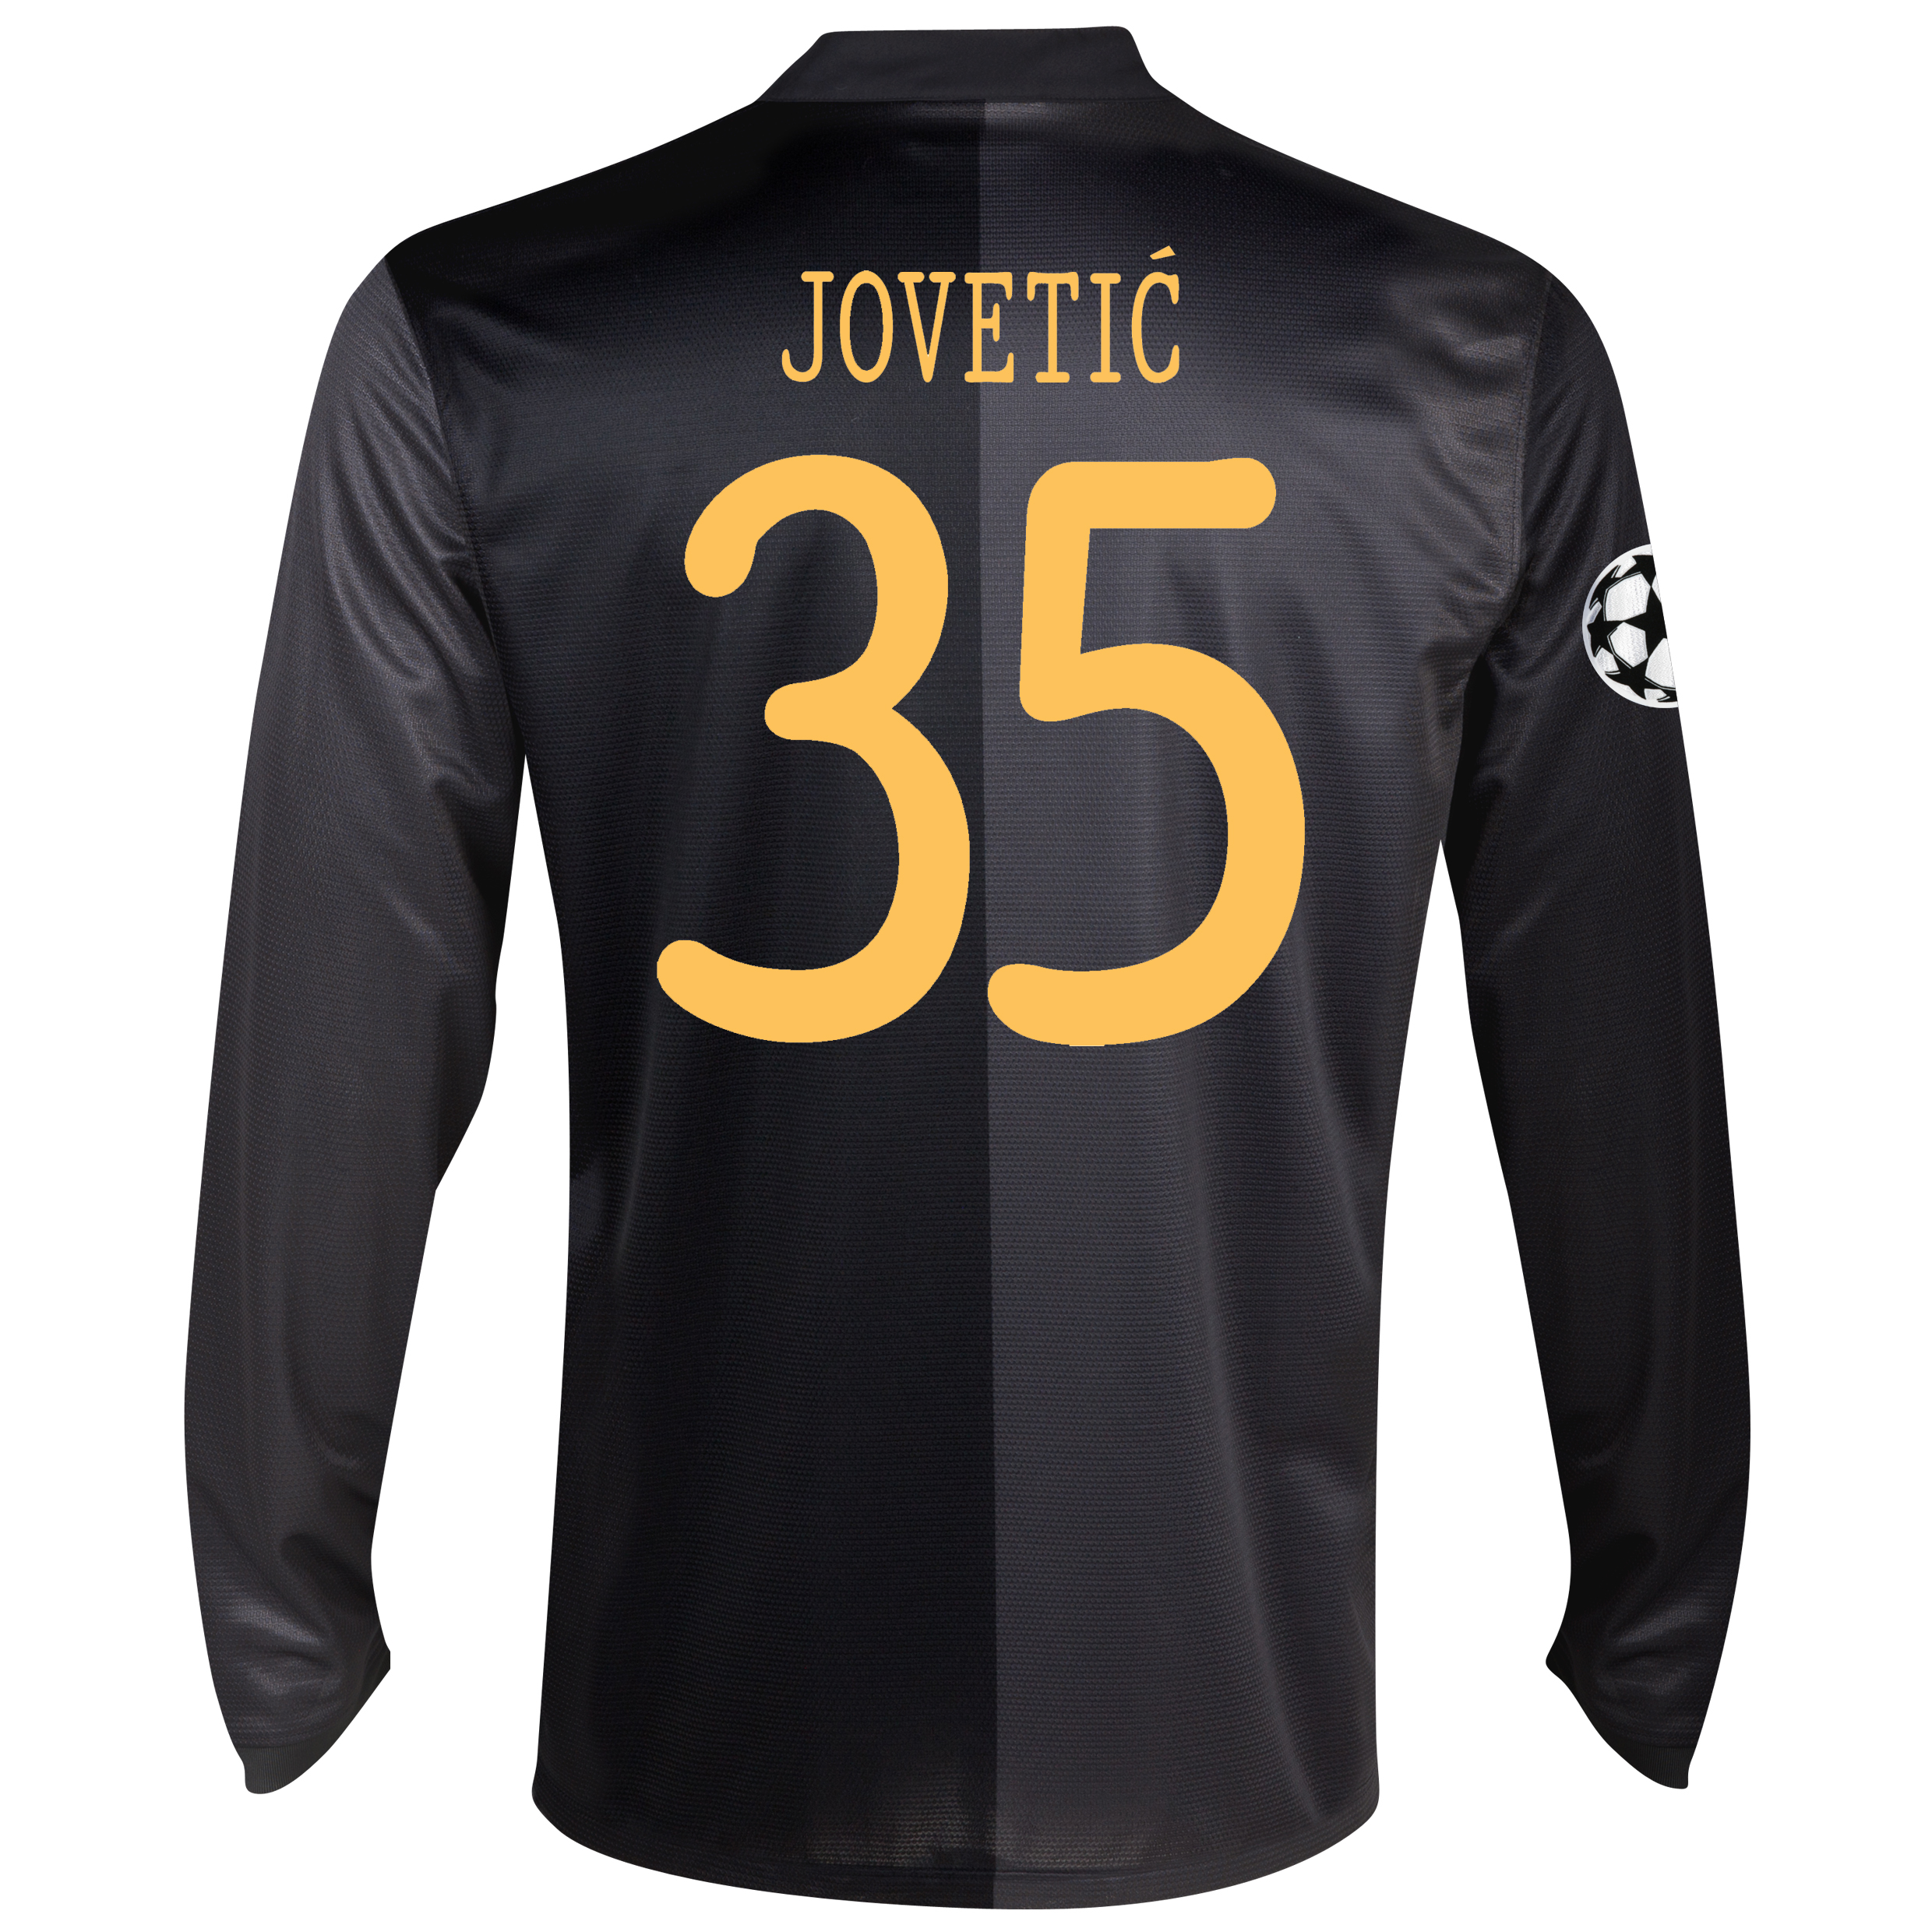 Manchester City UEFA Champions League Away Shirt 2013/14 - Long Sleeved with Jovetic 35 printing